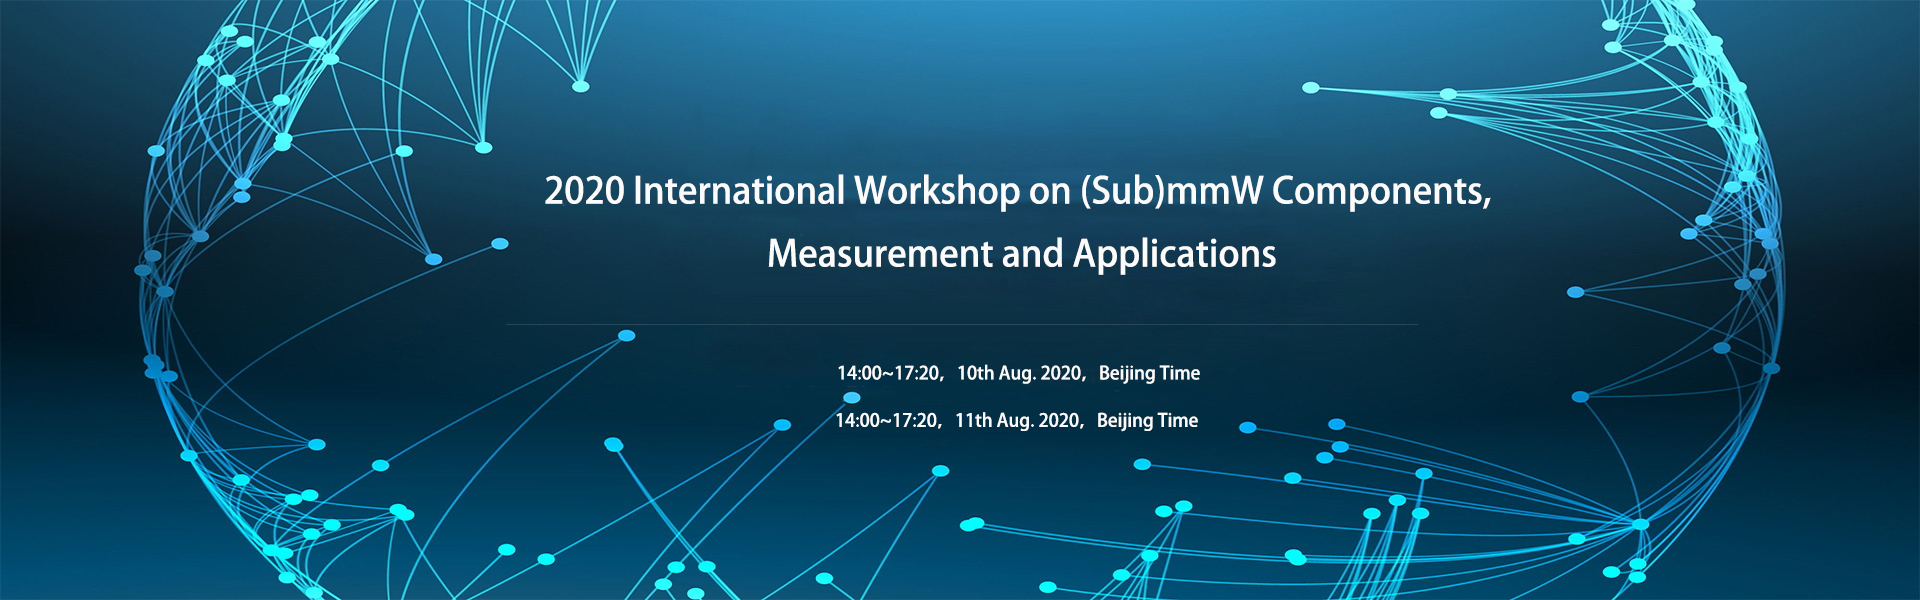 2020 International Workshop on (Sub)mmW Components, Measurement and Applications